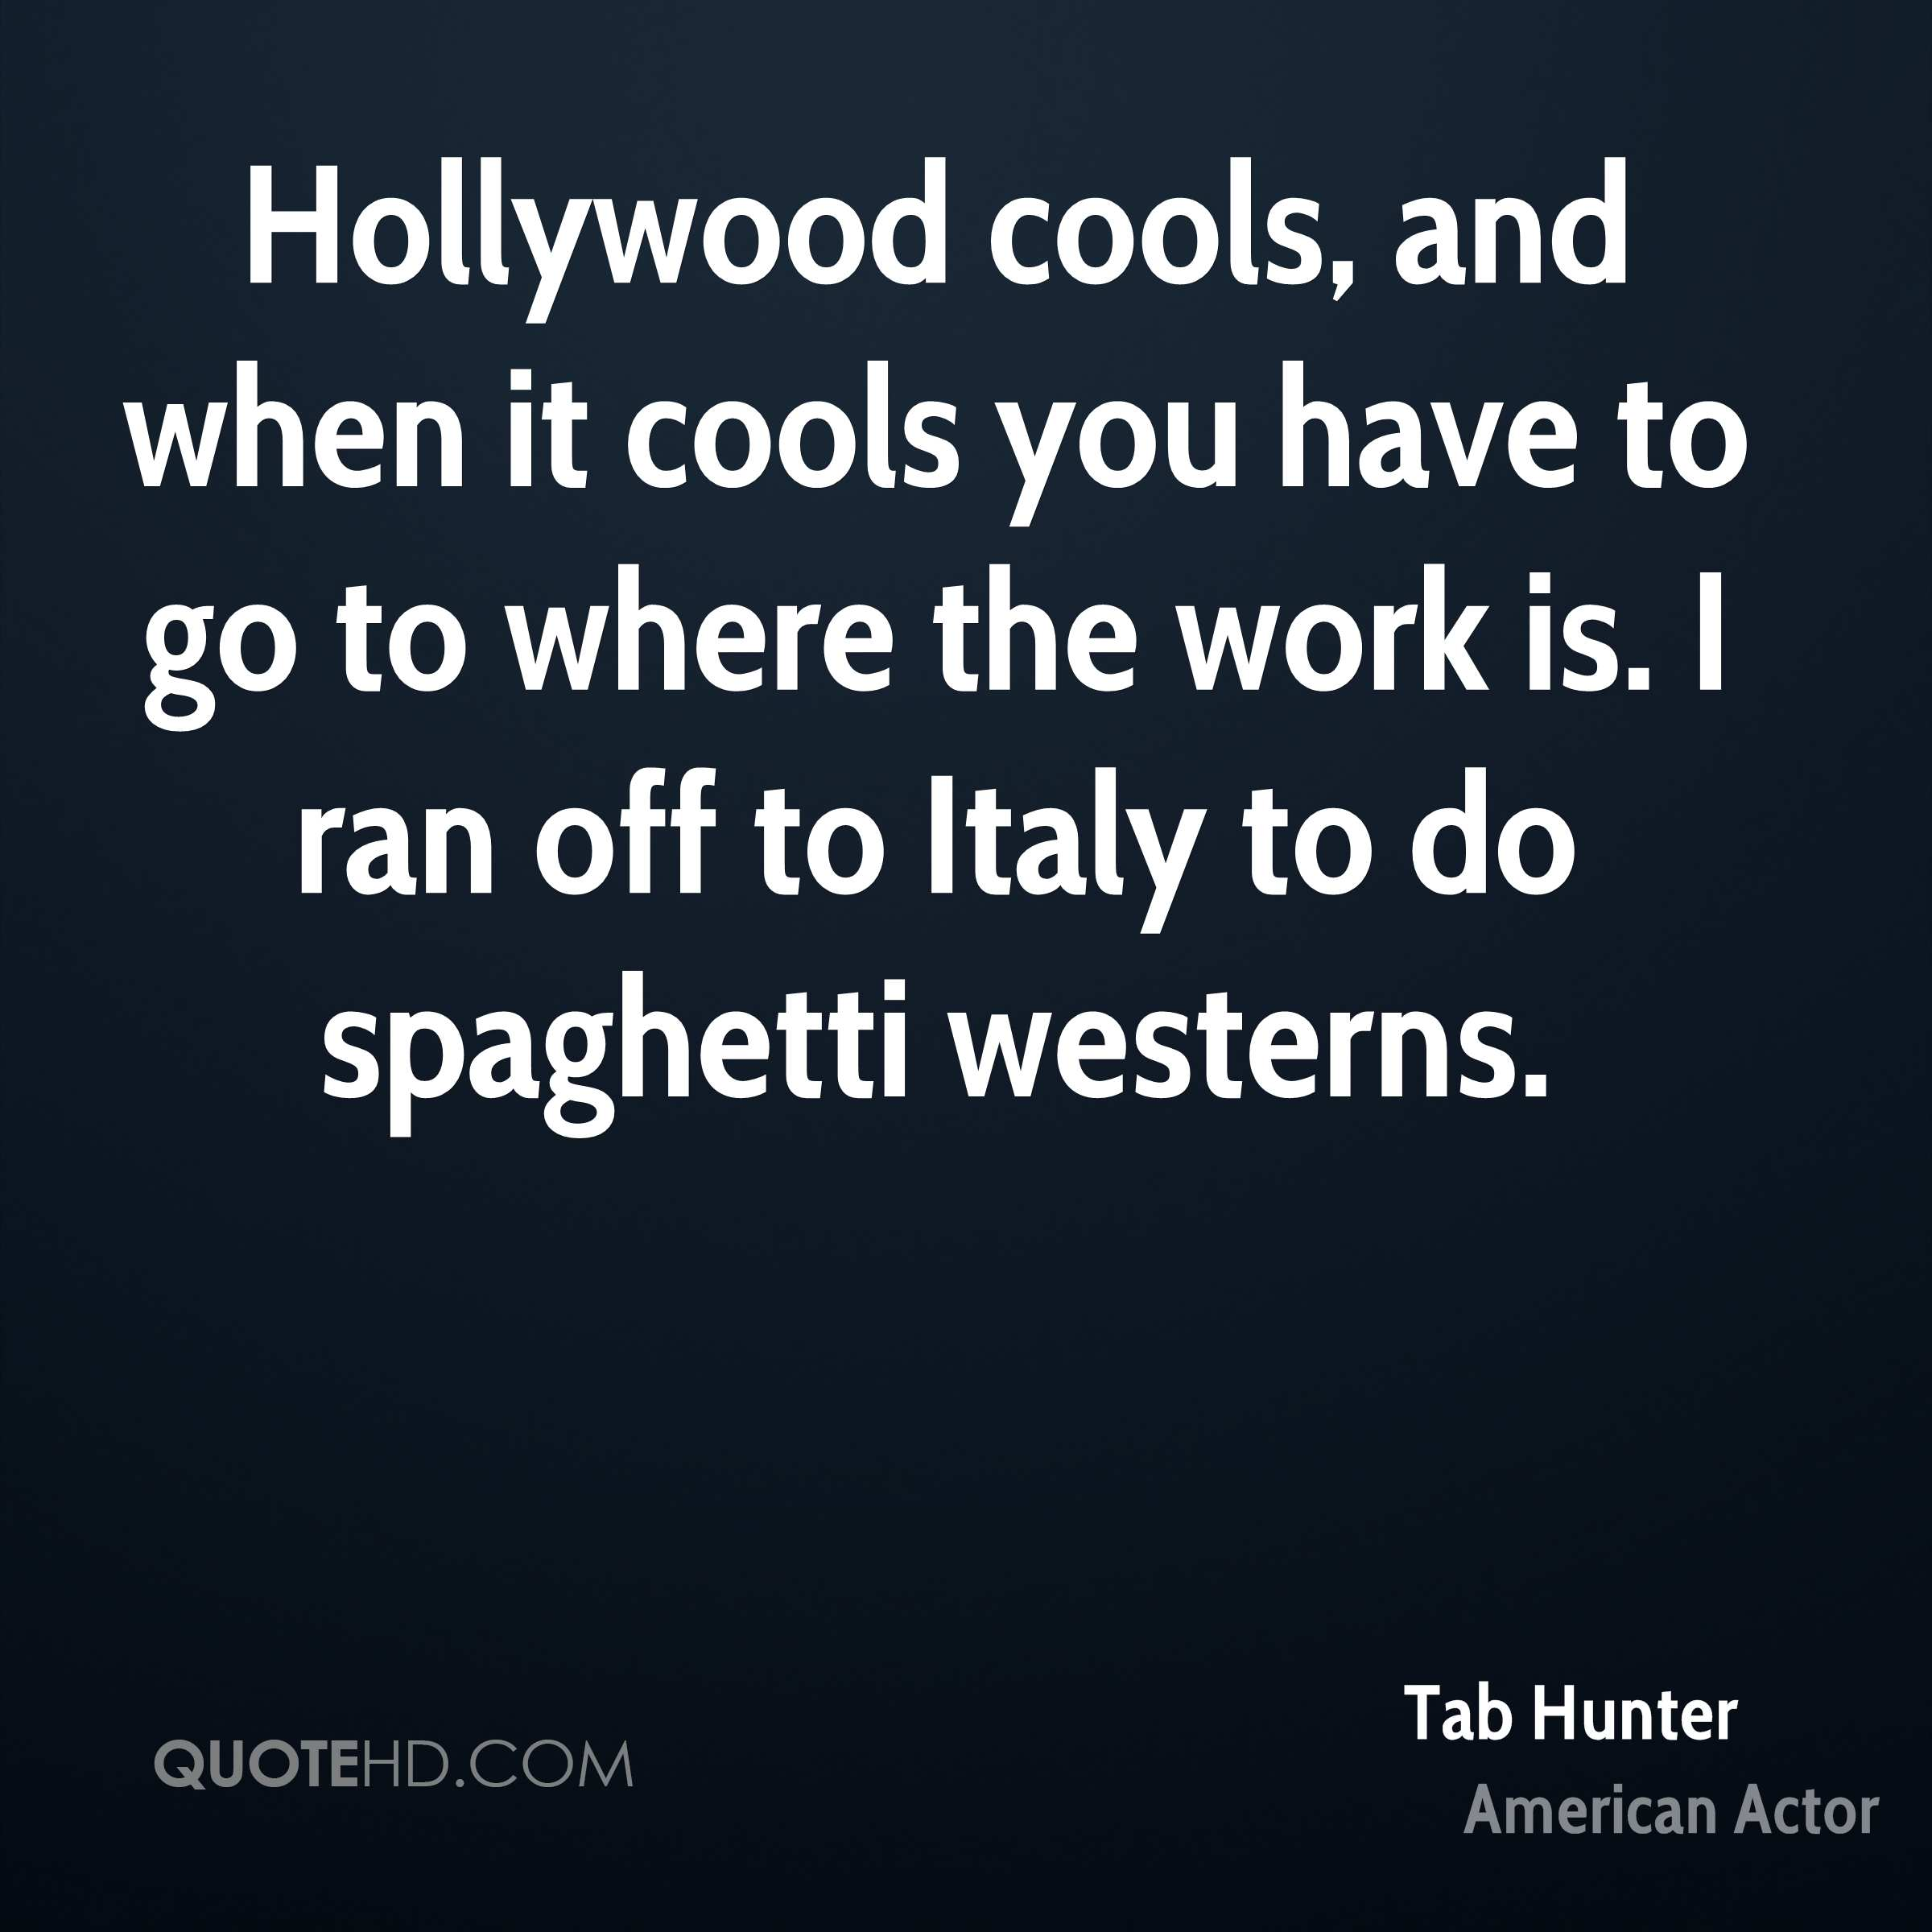 Hollywood cools, and when it cools you have to go to where the work is. I ran off to Italy to do spaghetti westerns.